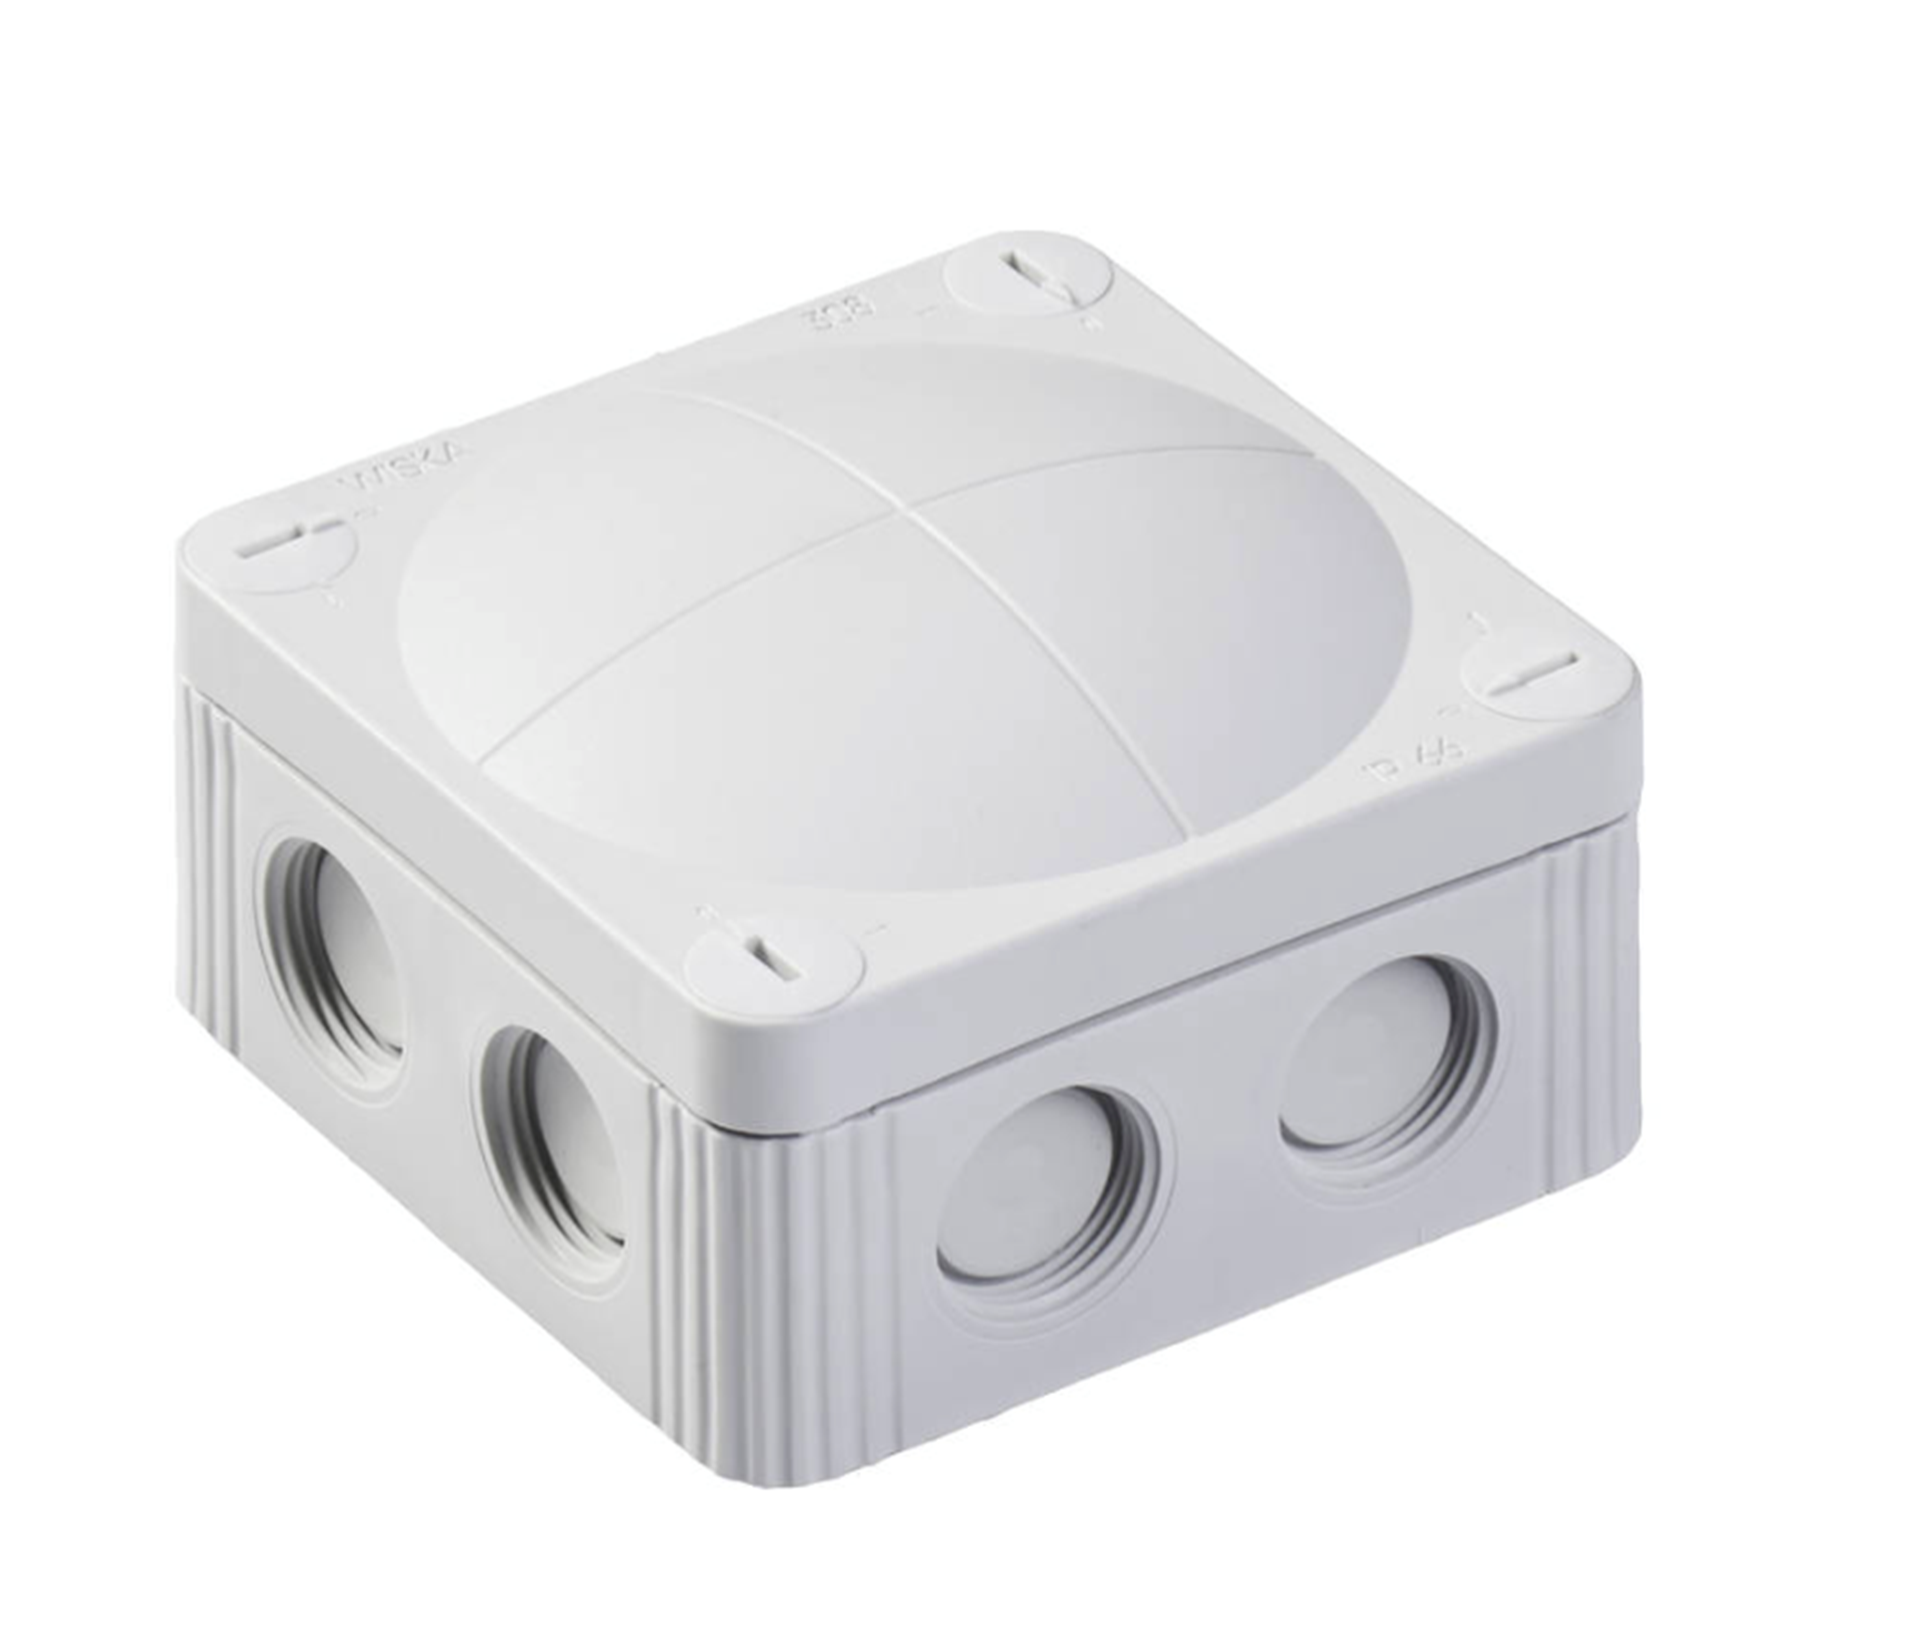 Wiska COMBI 308/5 Junction box Inc. 5 Pole, 32amp connector & mounting clip LG 10060401